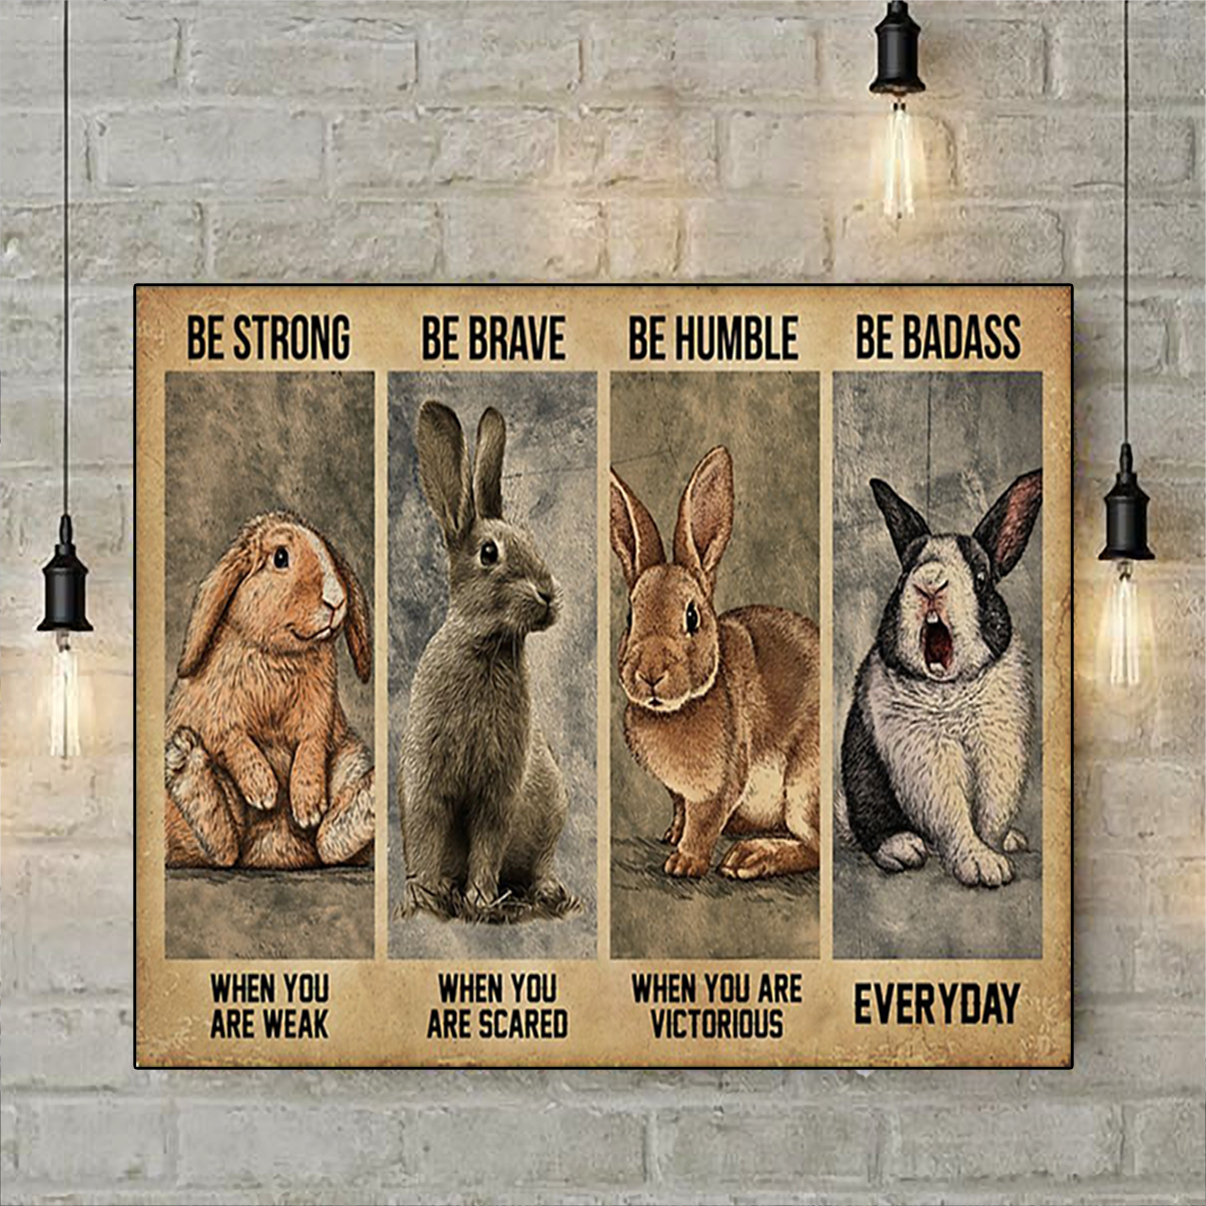 Rabbit be strong be brave be humble be badass poster A2